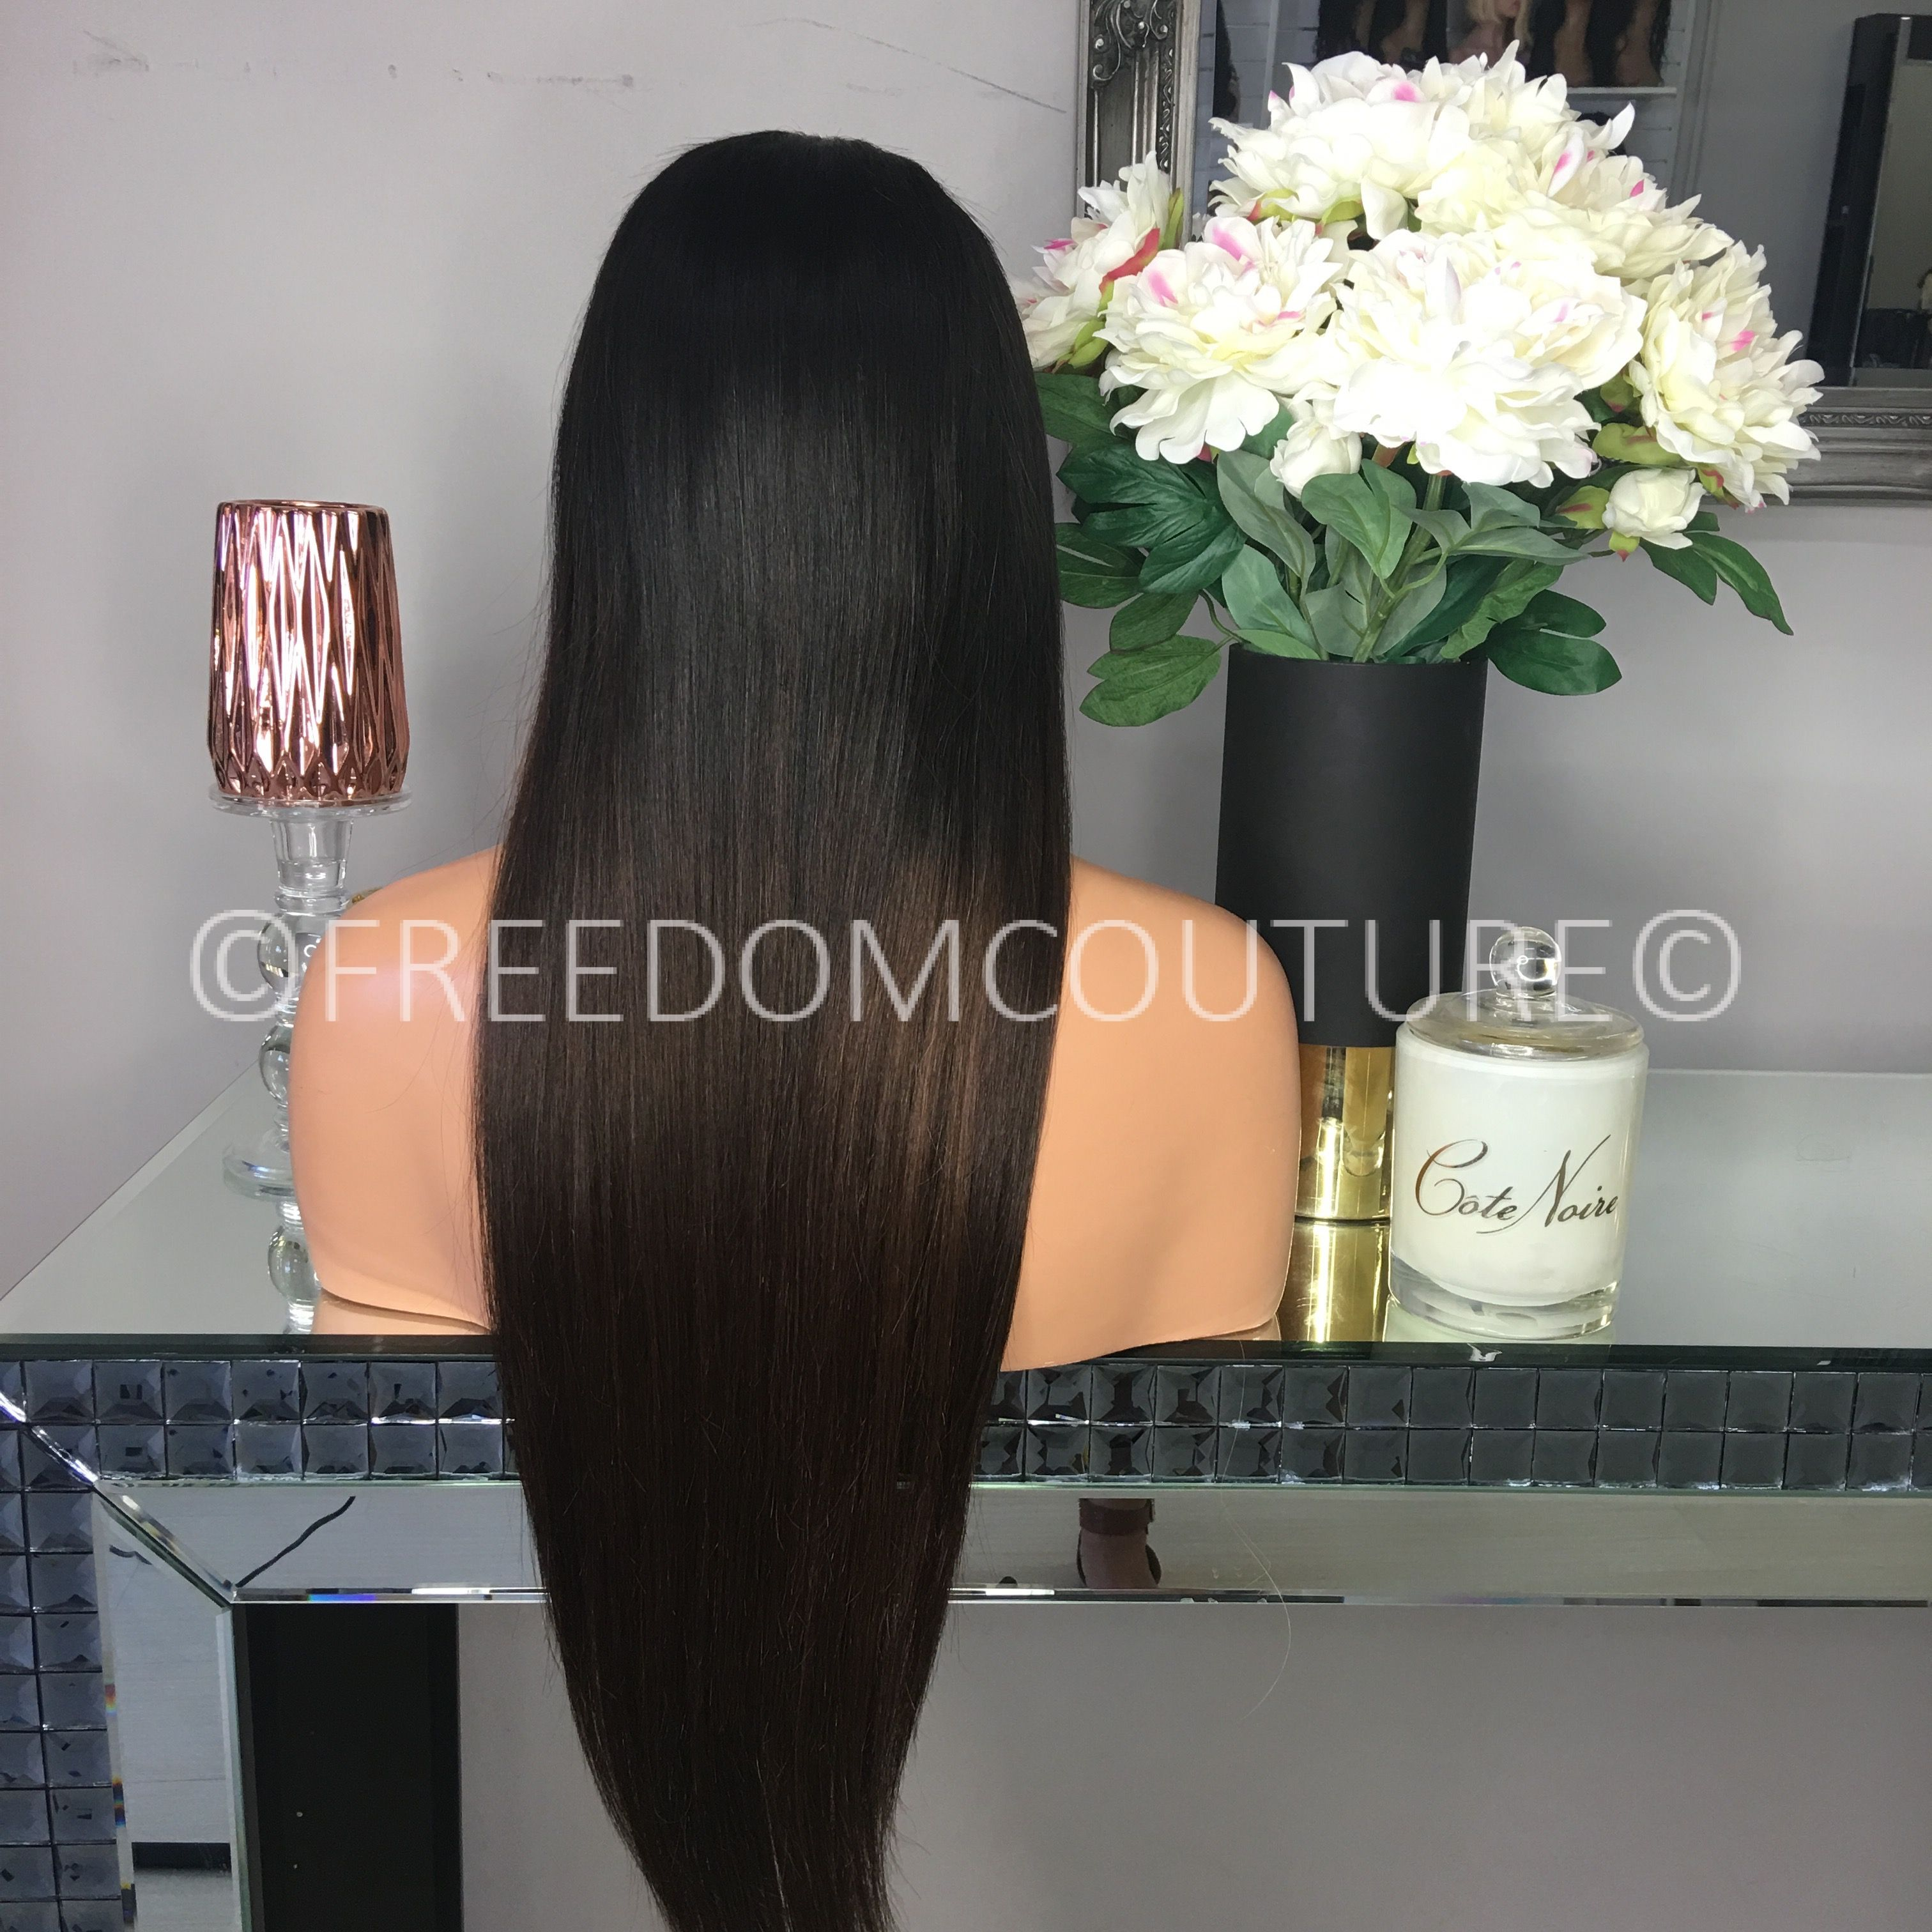 The gabanna unit hair extensions human hair wigs australia by the gabanna unit hair extensions human hair wigs australia by freedom couture in perth pmusecretfo Image collections